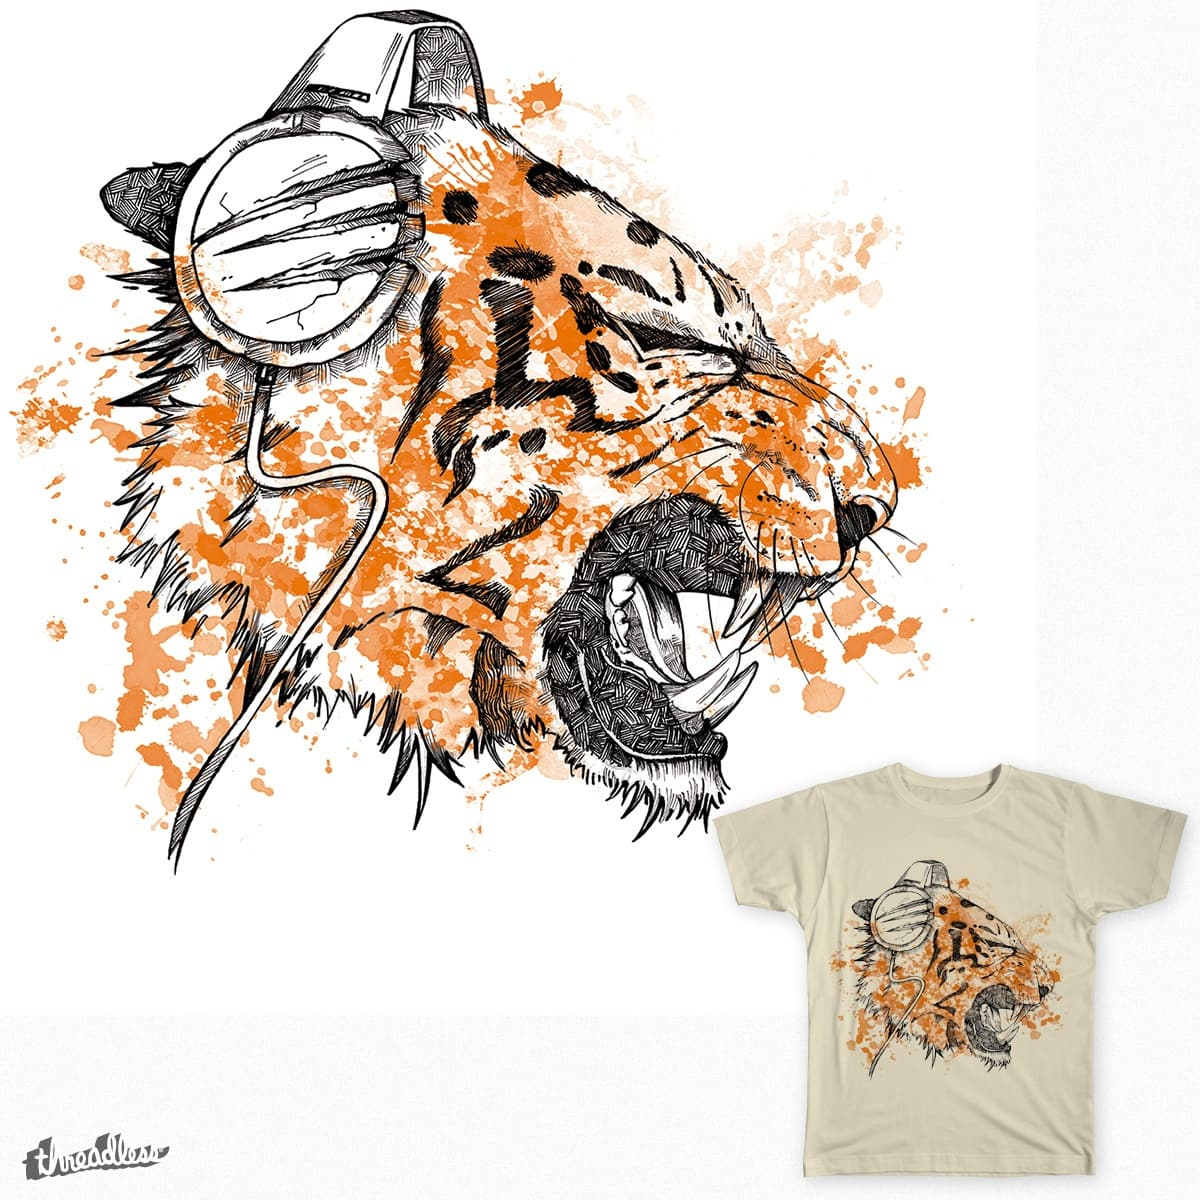 The Ear of the Tiger by filds on Threadless